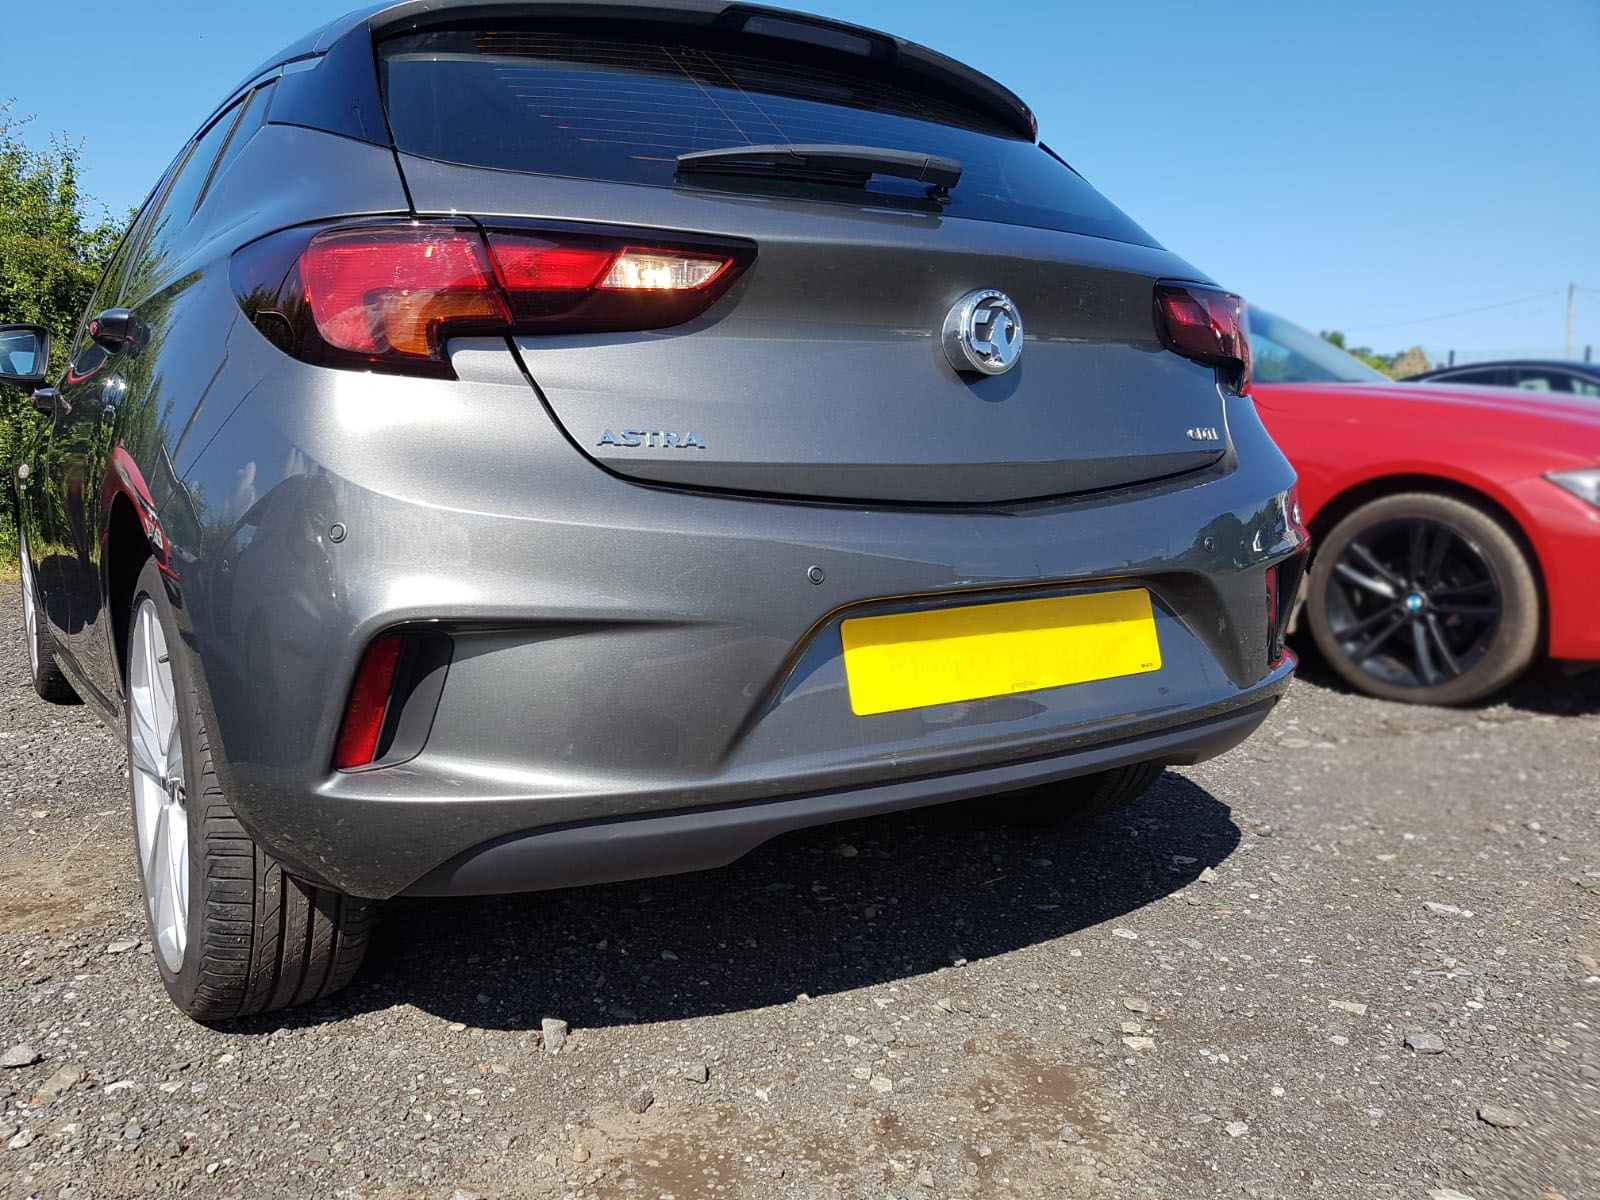 Vauxhall astra - new parking sensors fitted